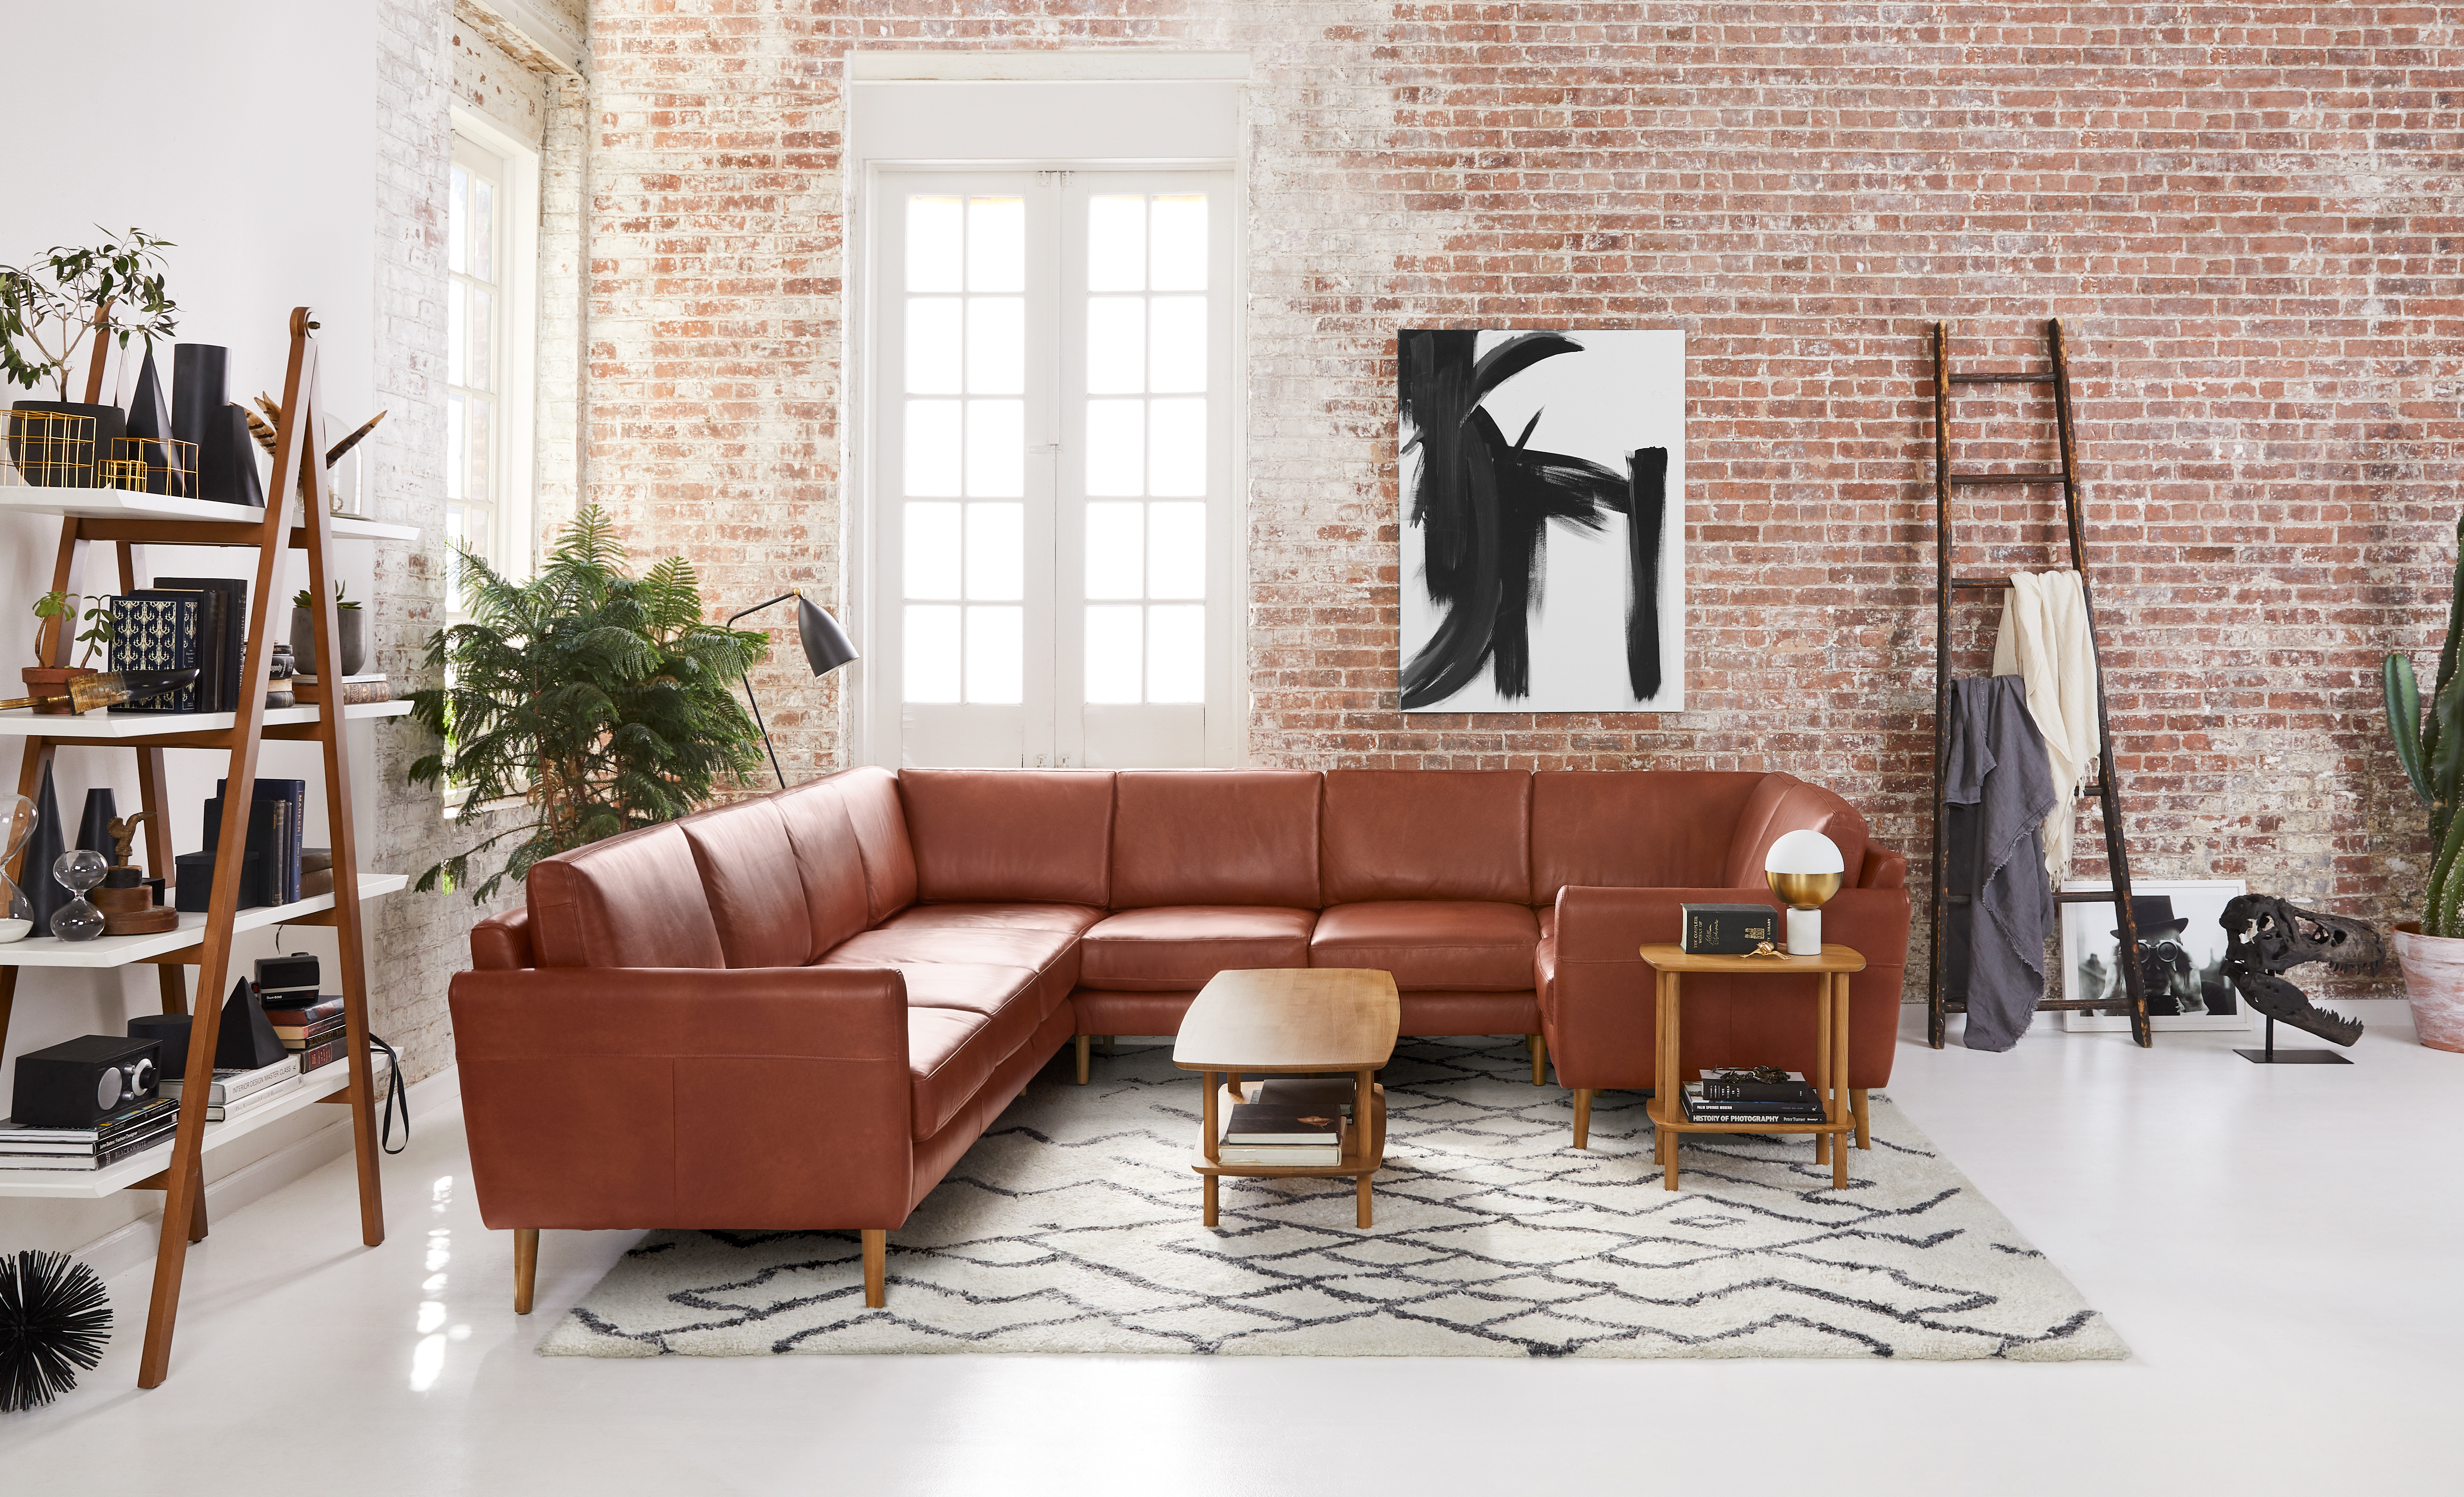 Brown leather sectional in brick-walled living room.